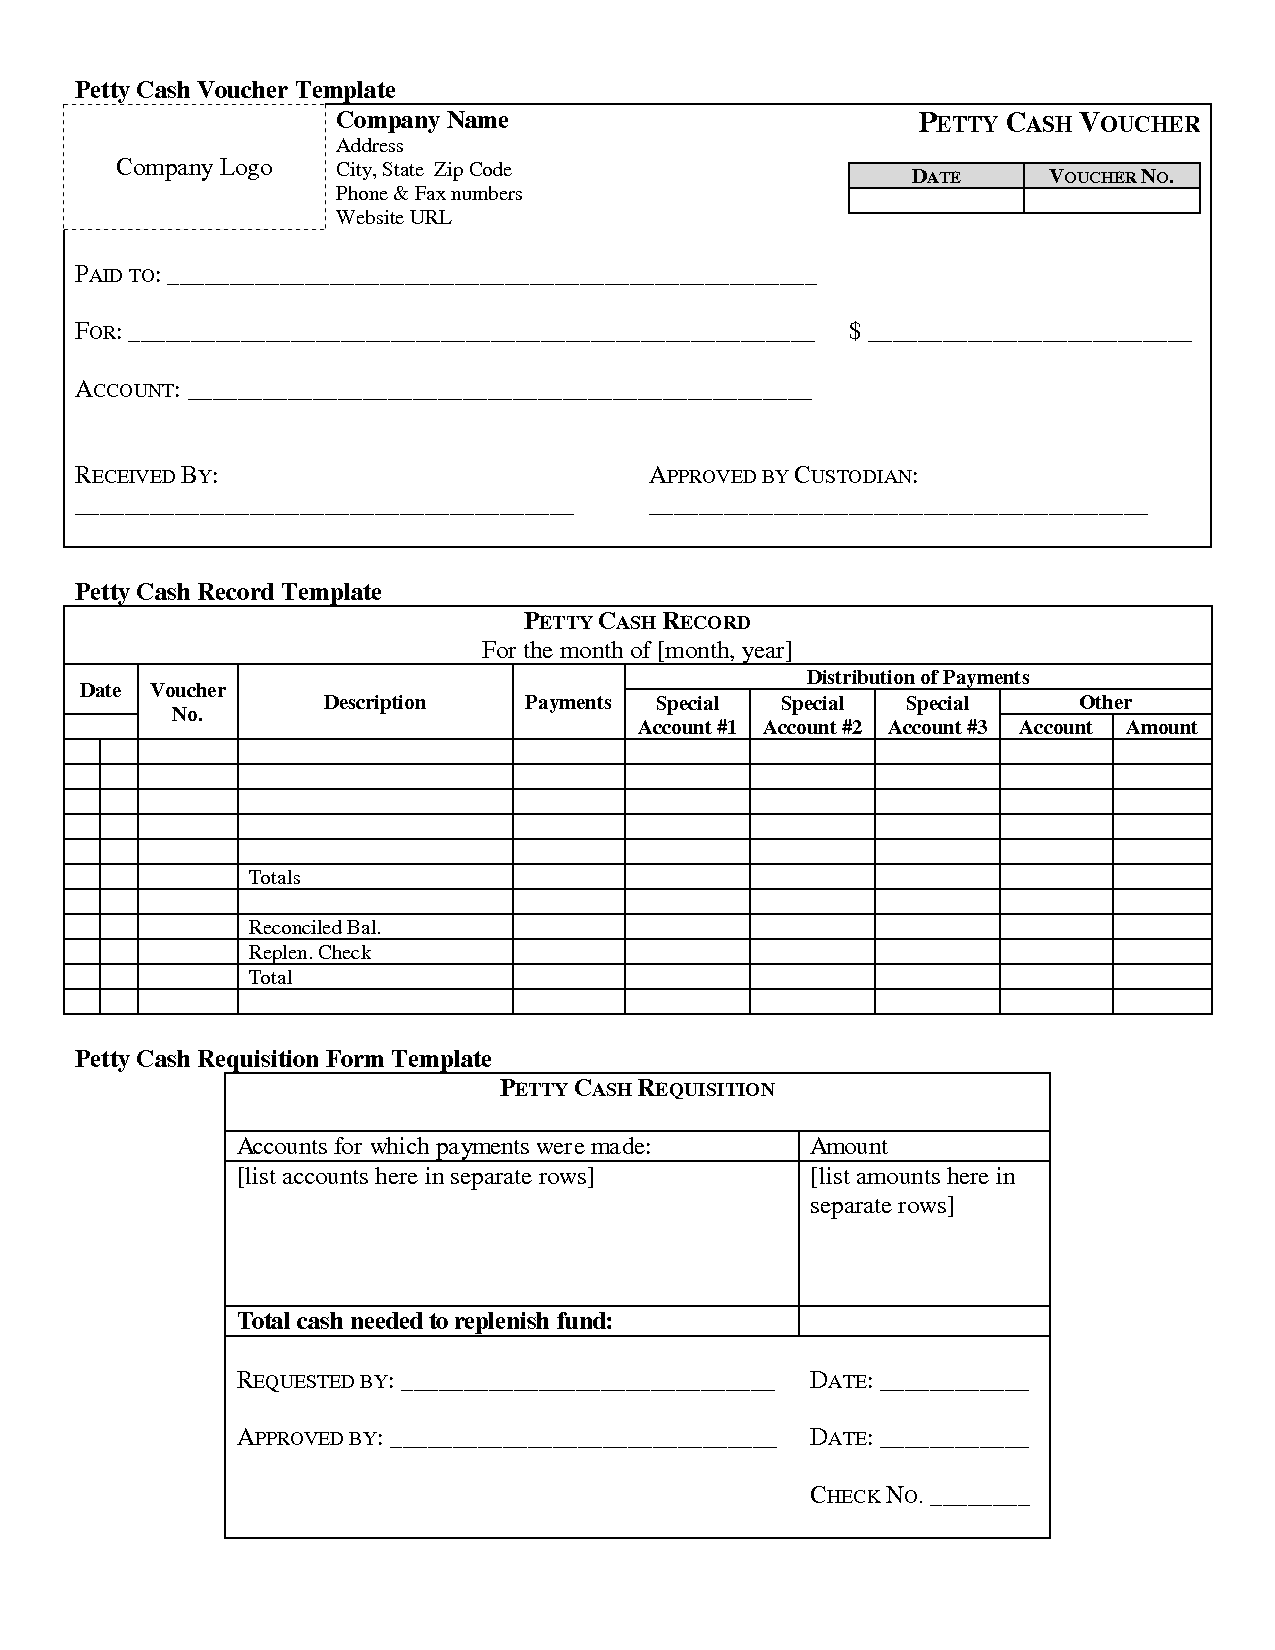 free template receipt form - Google Search | Forms | Pinterest ...